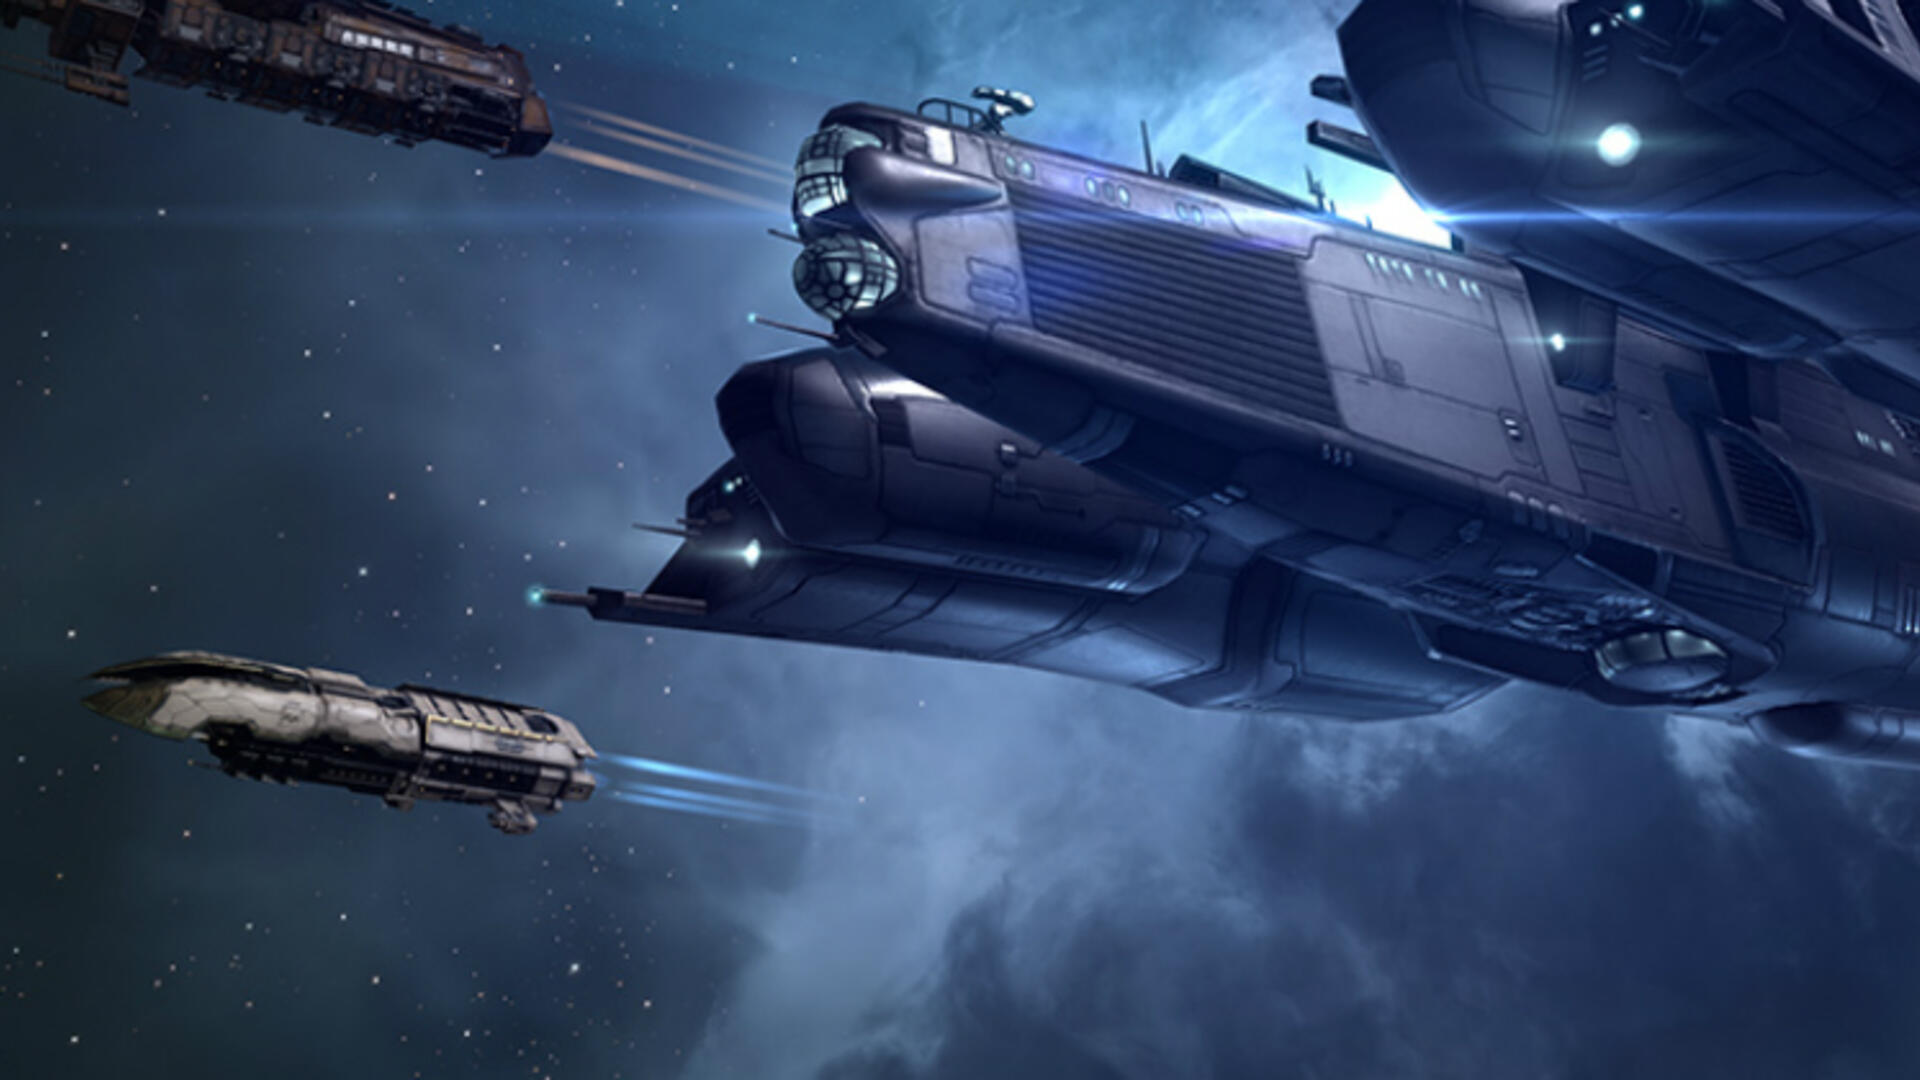 EVE Online Offers Free-to-Play Tier With Clone States This